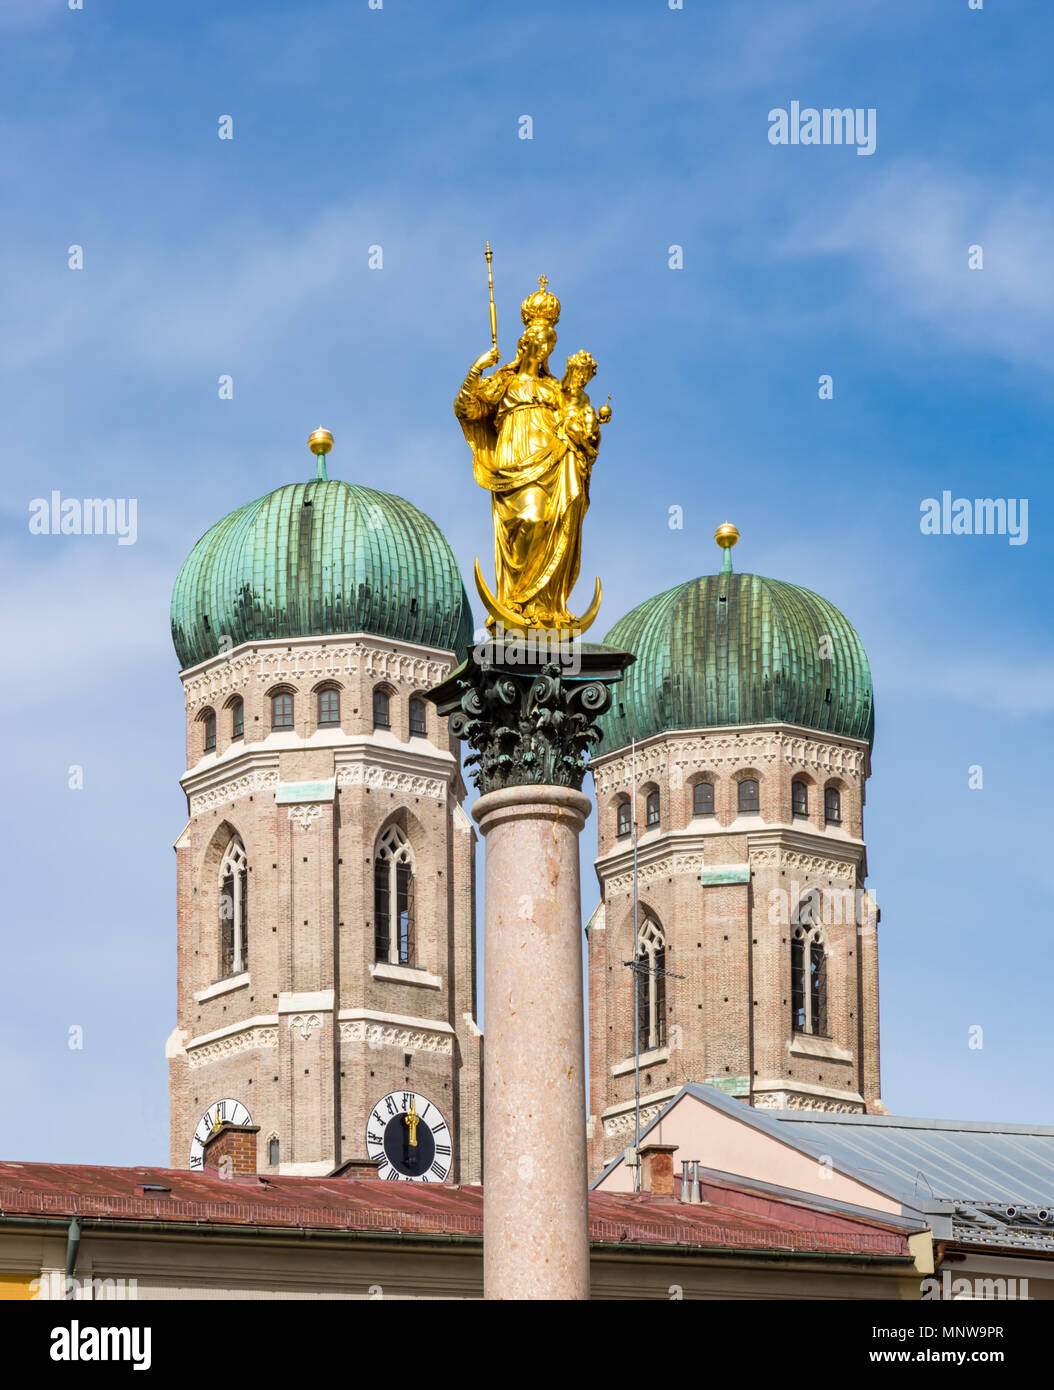 Marian column and the Frauenkirche cathedral of Munich - Stock Image